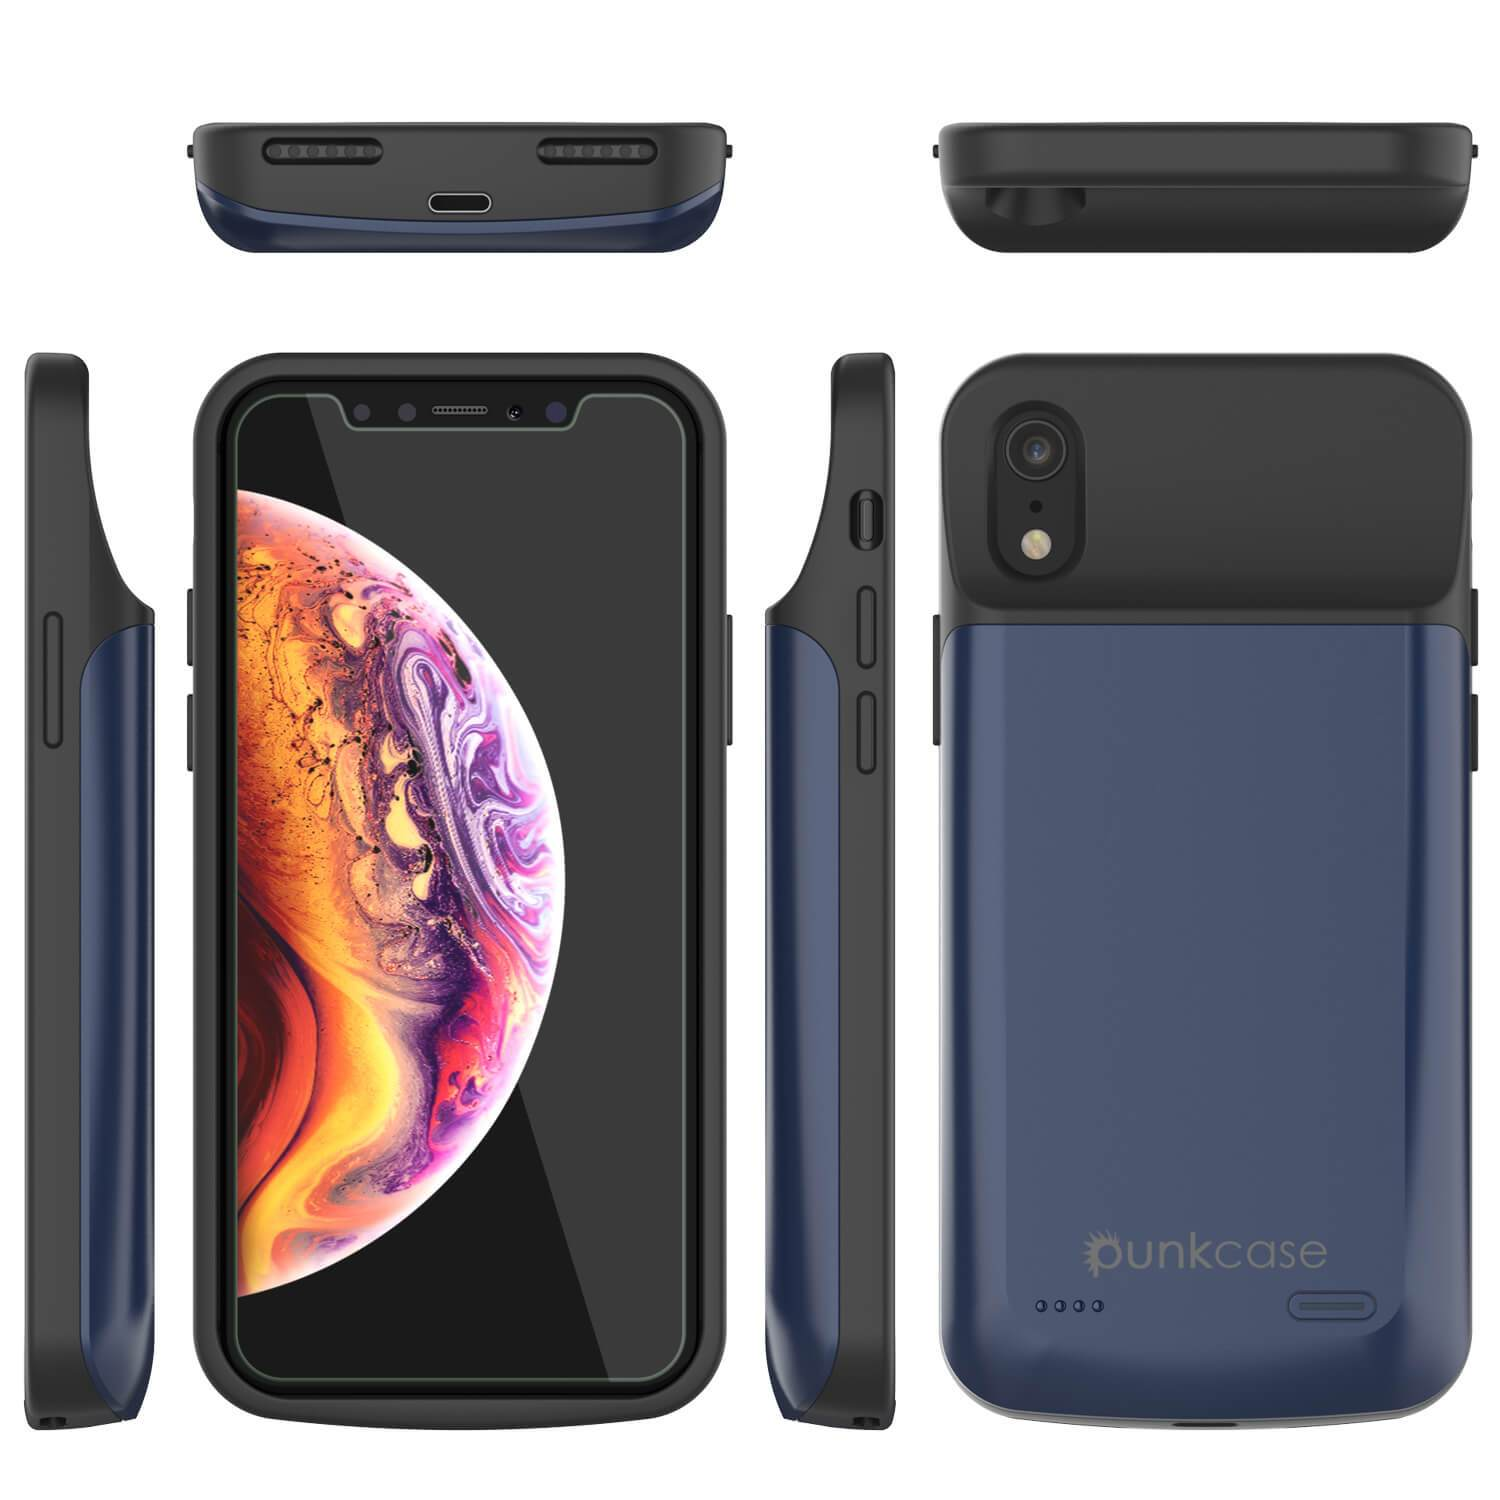 iphone XR Battery Case, PunkJuice 5000mAH Fast Charging Power Bank W/ Screen Protector | [Blue]